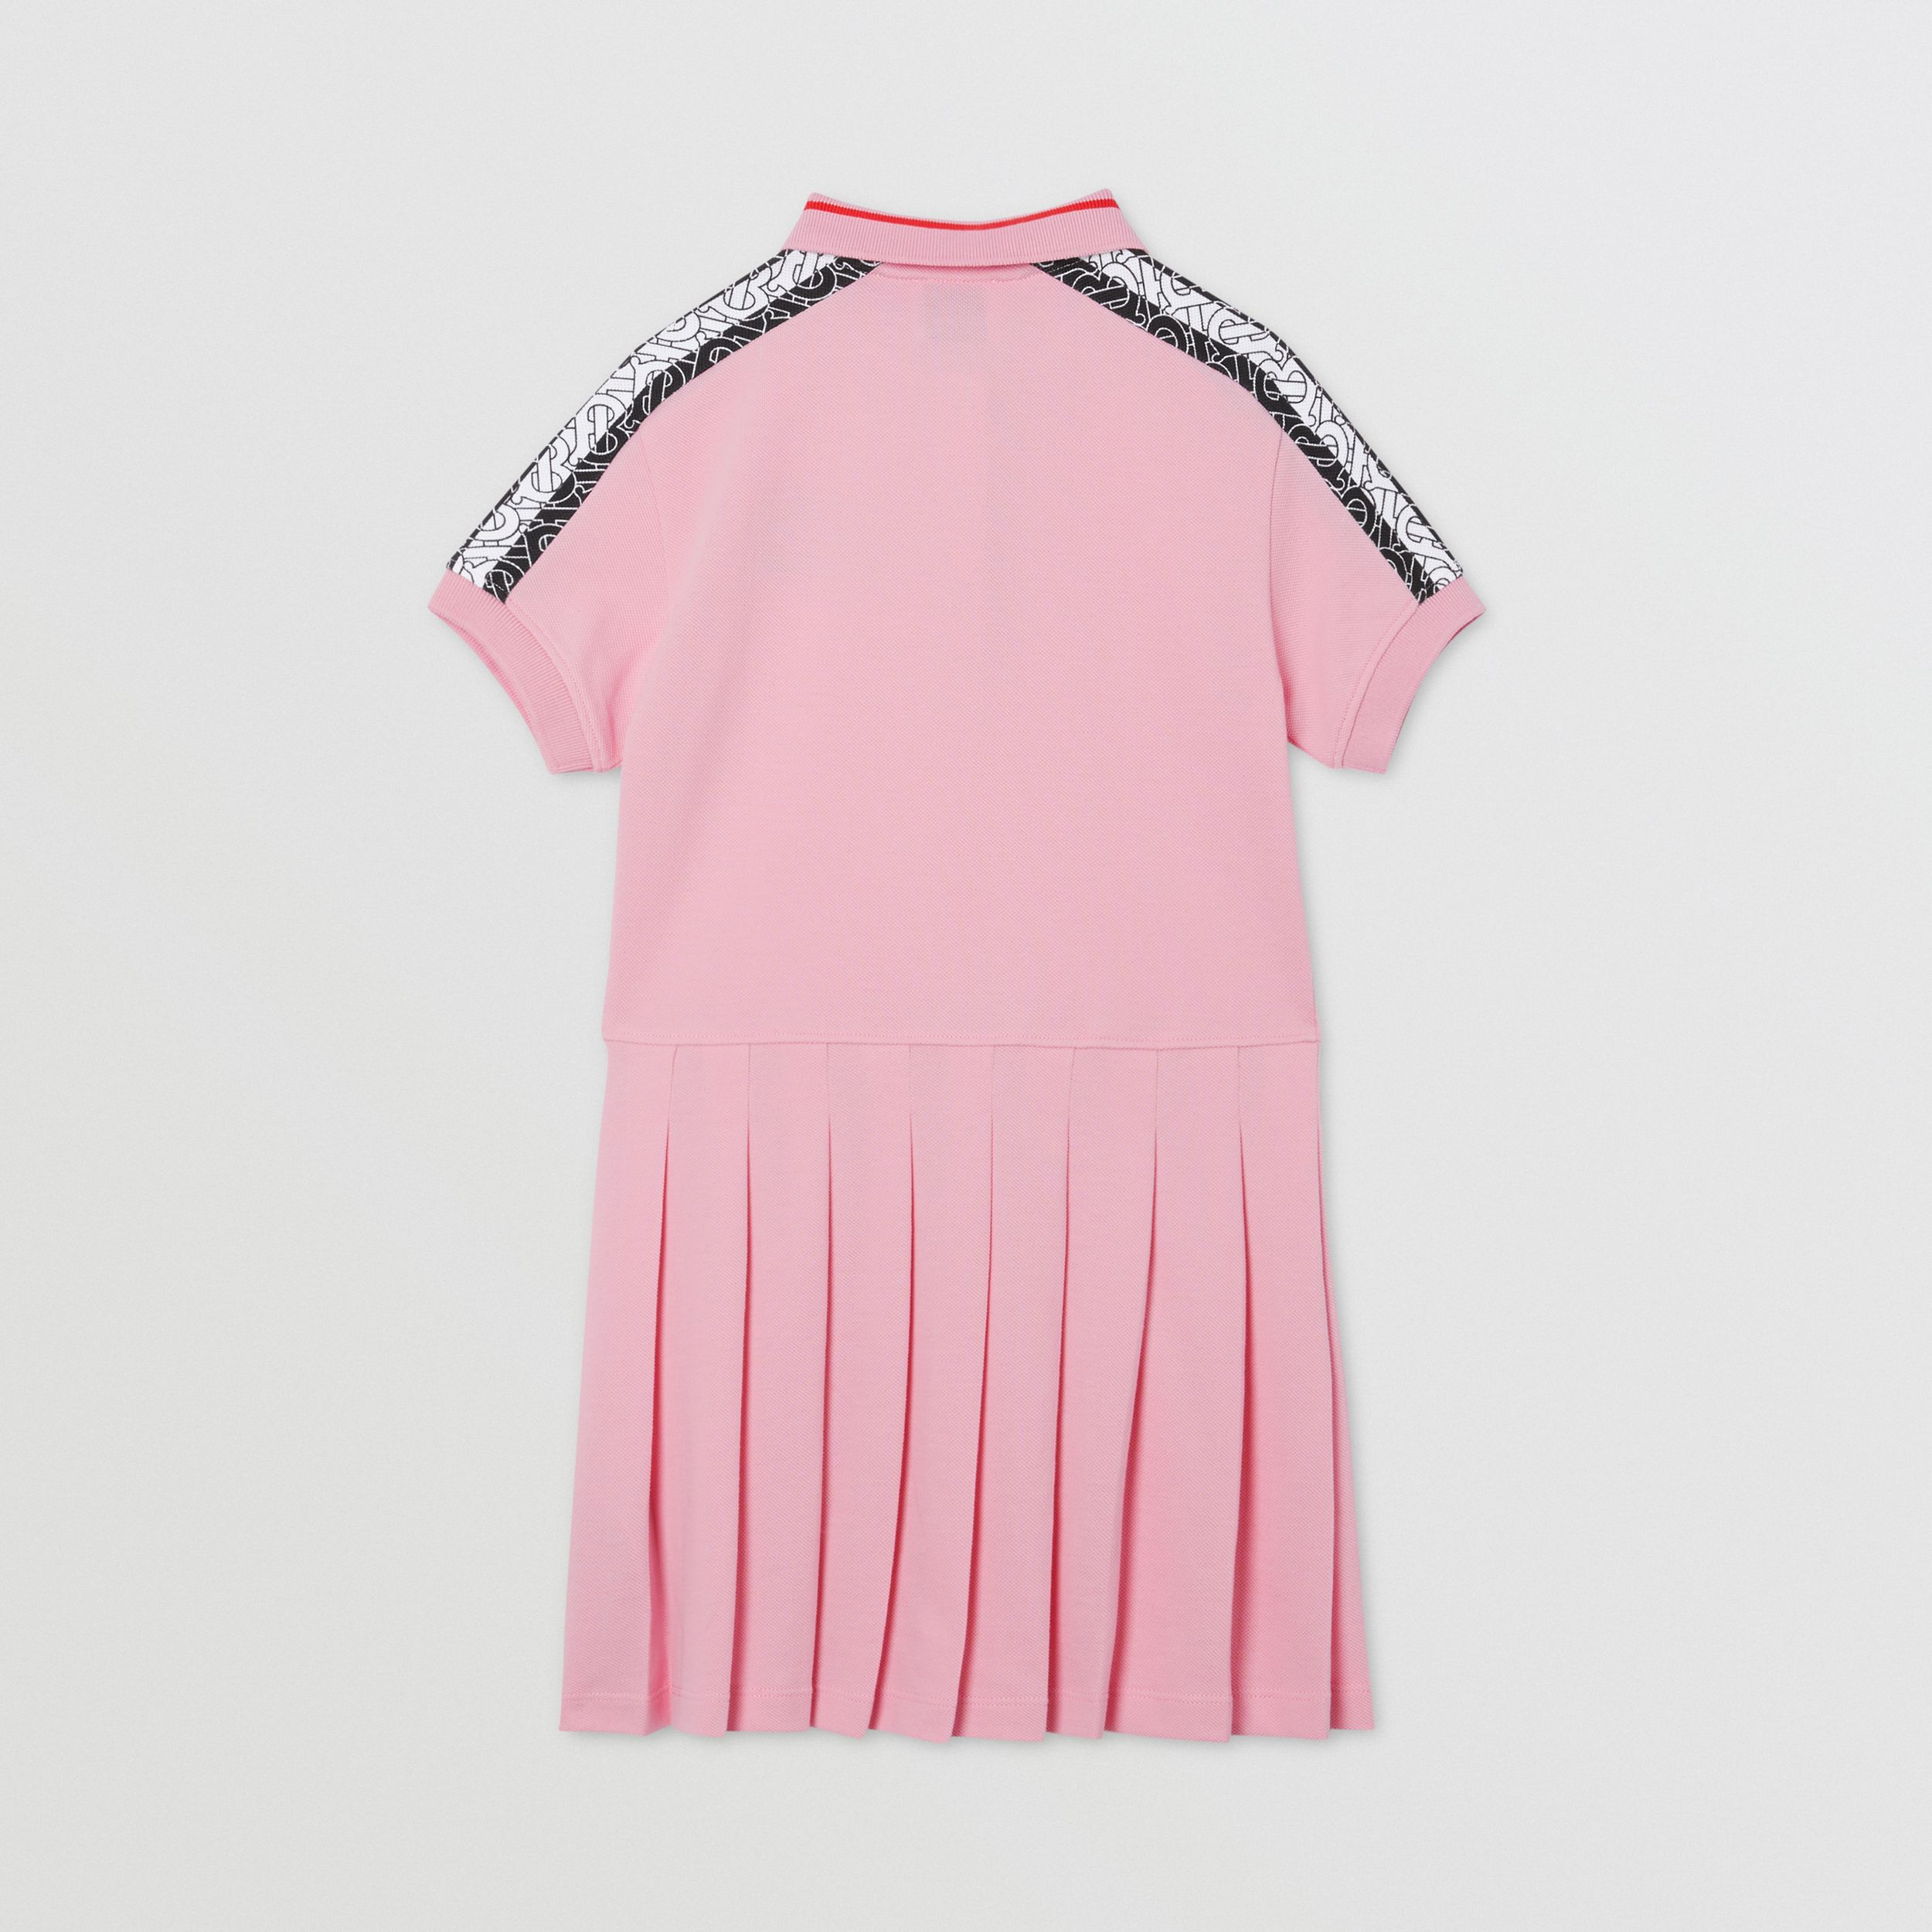 Monogram Stripe Print Cotton Piqué Polo Shirt Dress in Candy Pink | Burberry Canada - 4